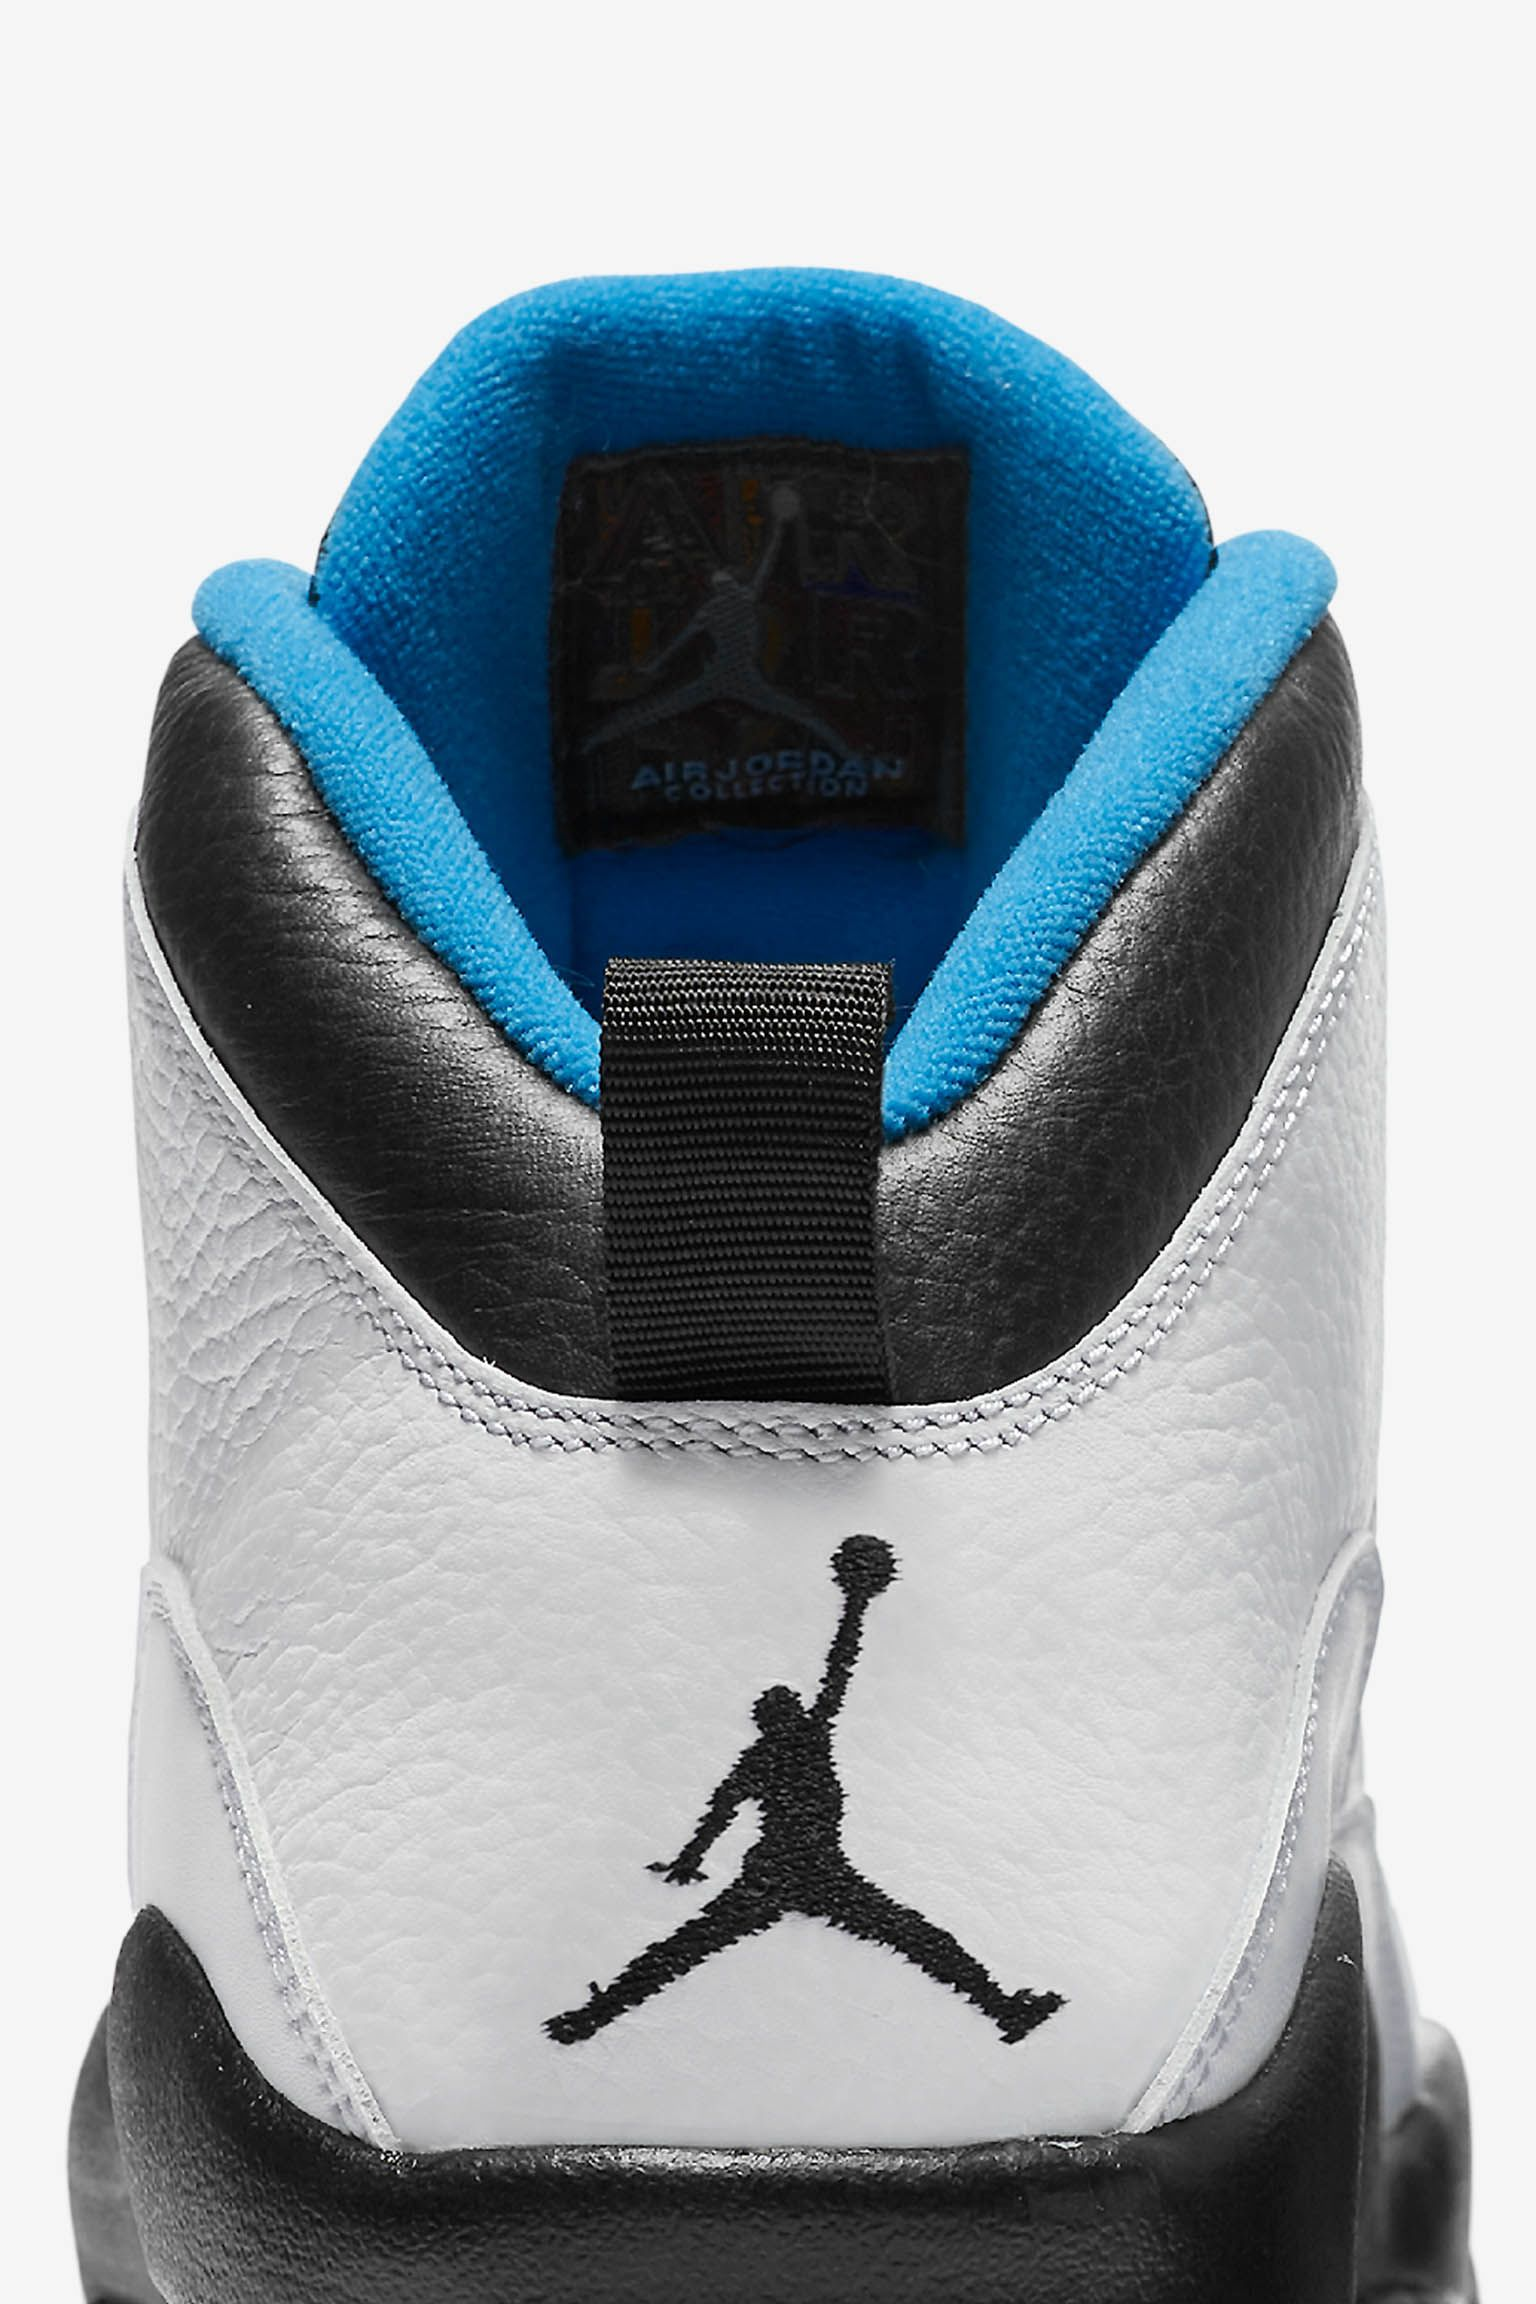 Air Jordan 10 Retro 'Powder Blue'. Release Date